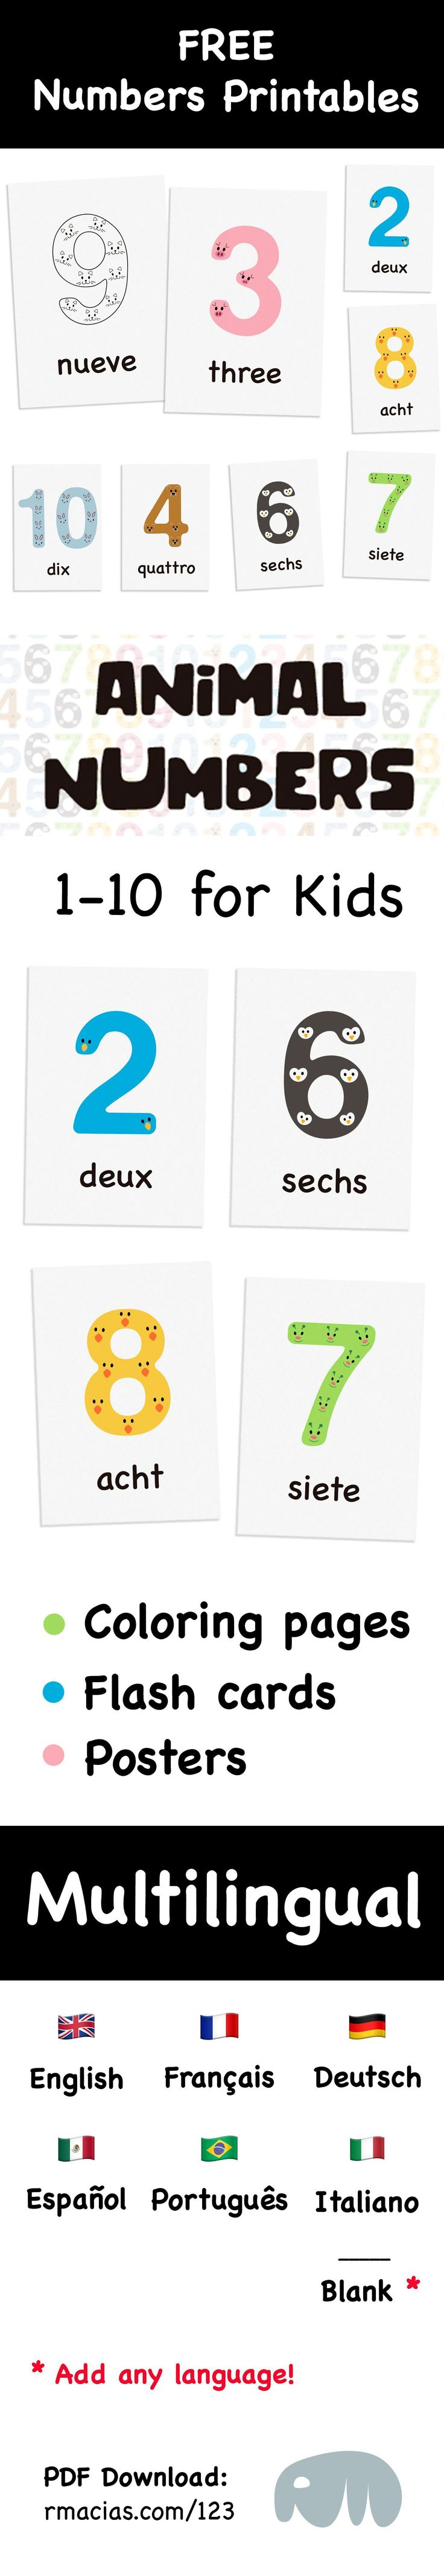 1-10 Animal Numbers for Preschool Kids (Free Multilingual Numbers Printables Bundle: Individual Posters, Flashcards and Coloring Pages) - Numbers with cute animal faces to teach counting and numbers recognition to kids in any language (or just to use as classroom décor). Since I love everything #multilingual the bundle is available in 6 different languages, as well as a Blank version (so you can add any other language):  English Spanish French German Portuguese Italian #learnitalianforkids